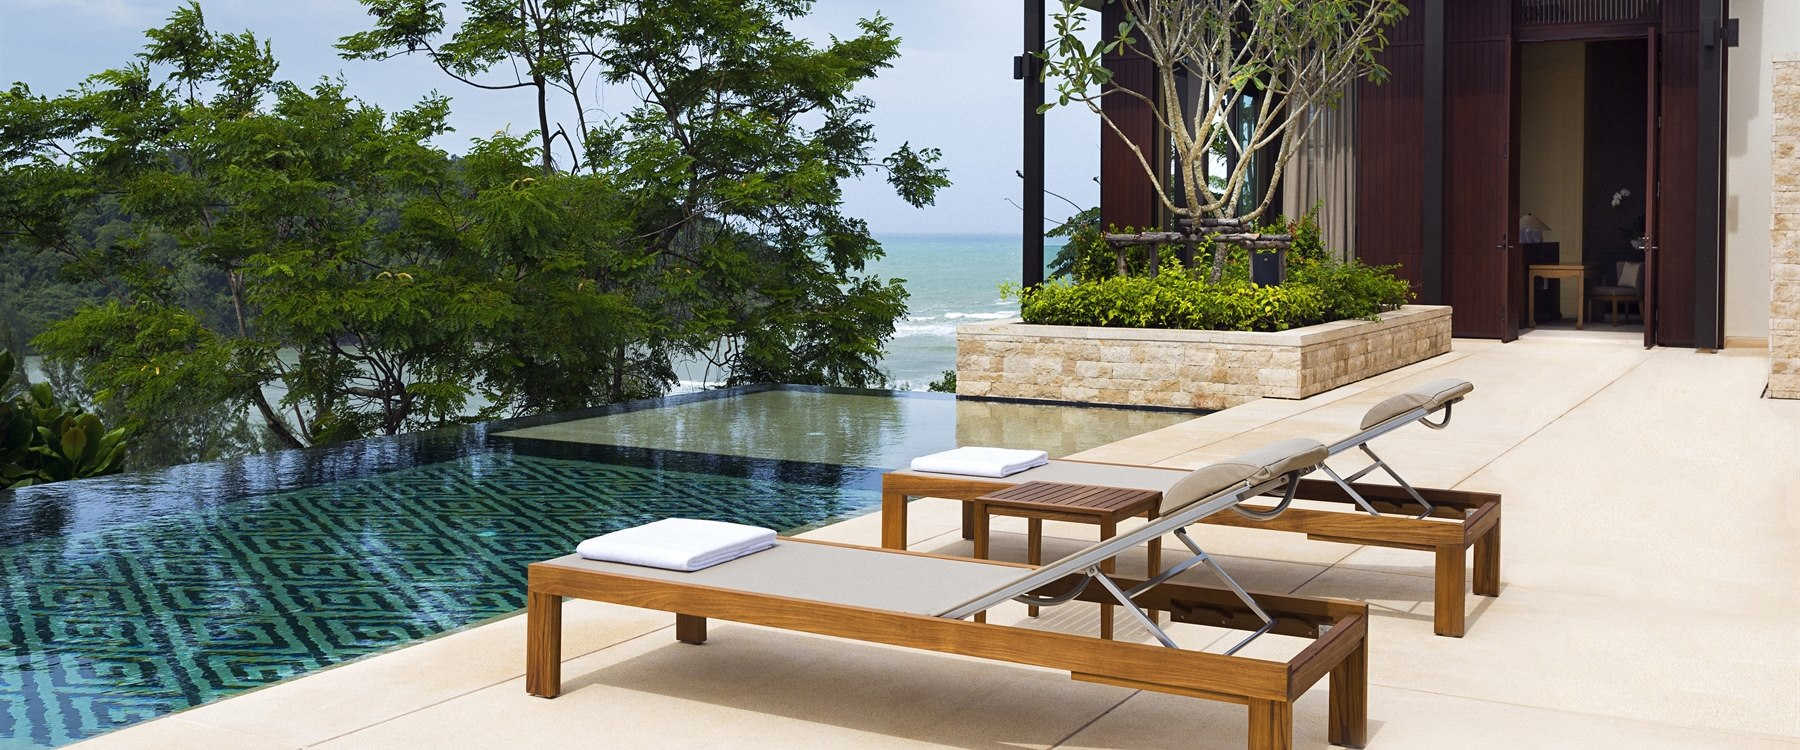 Residences Pool Terrace at Anantara Layan Phuket Resort, Thailand